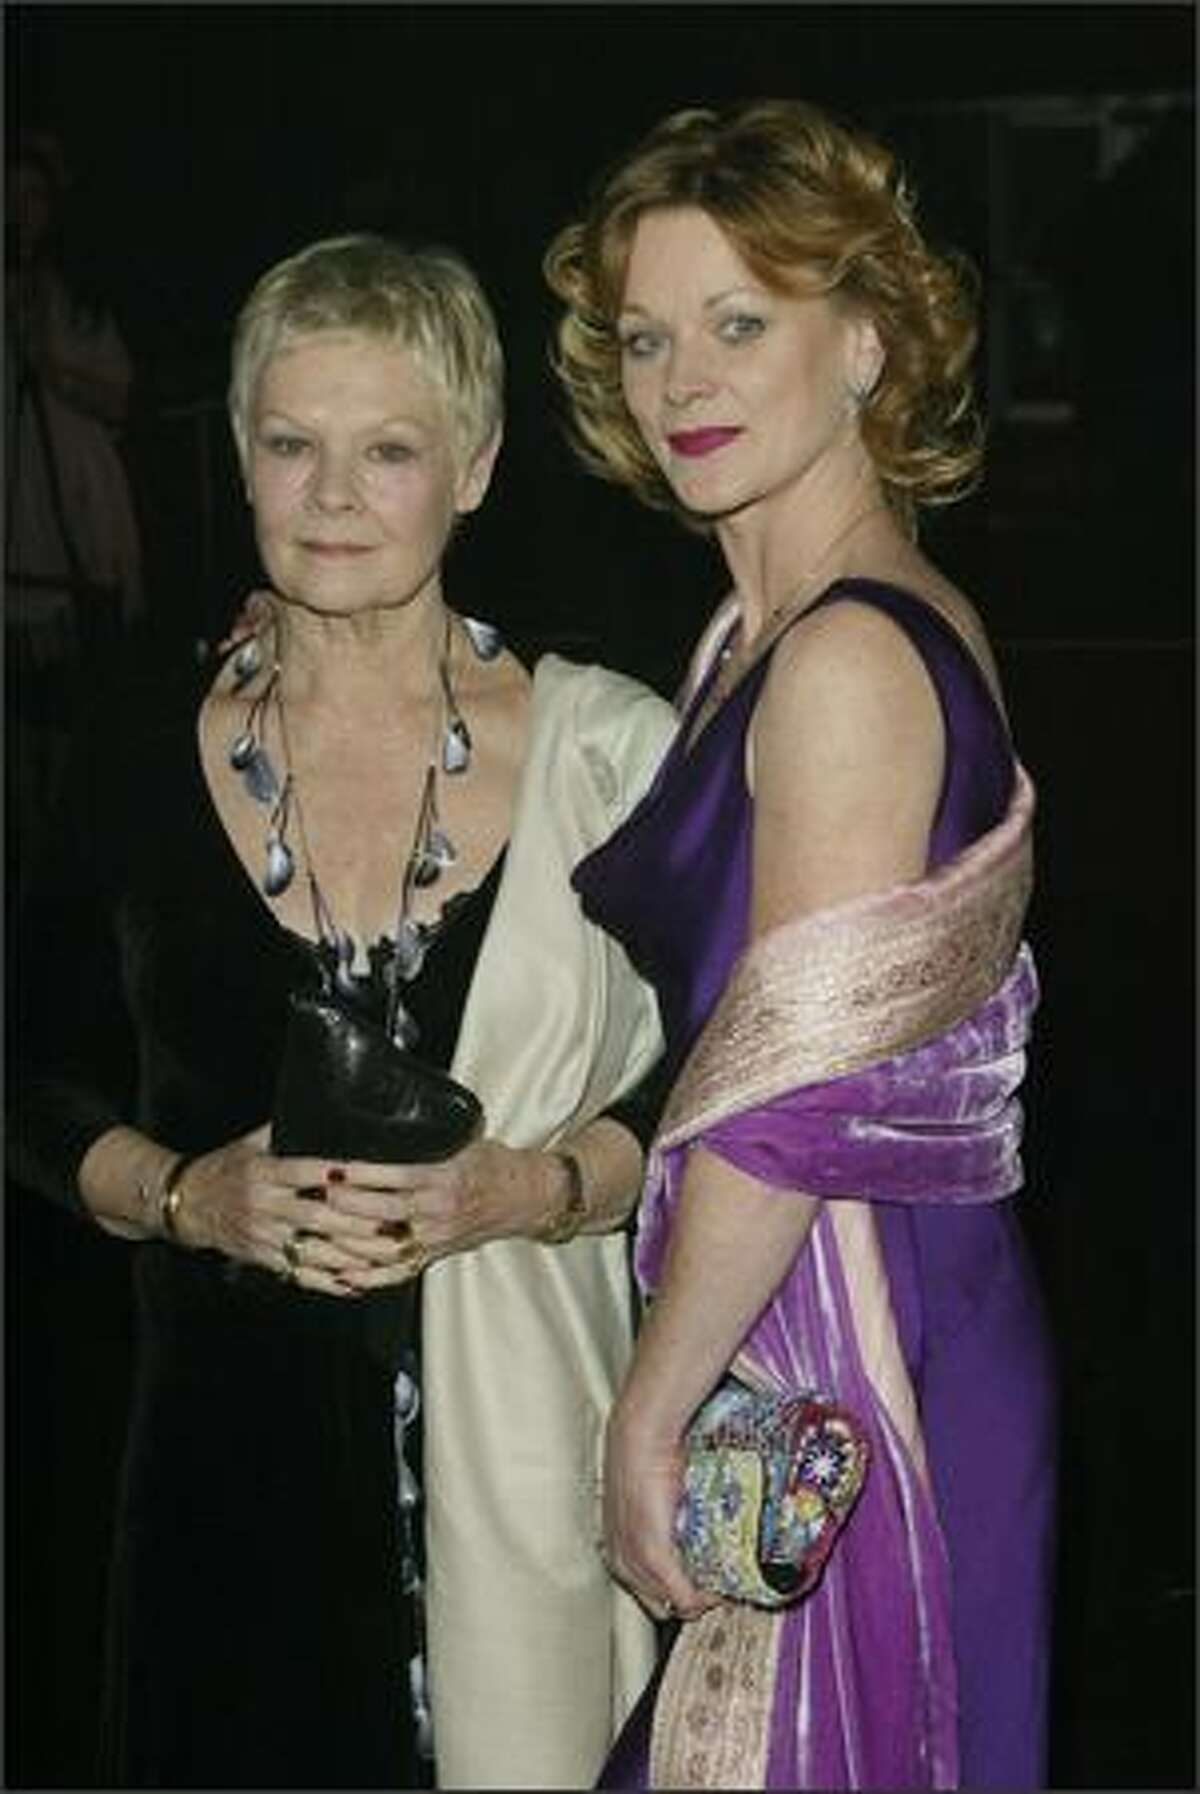 Actresses Dame Judi Dench and Samantha Bond at the after party for the World Premiere of the James Bond movie